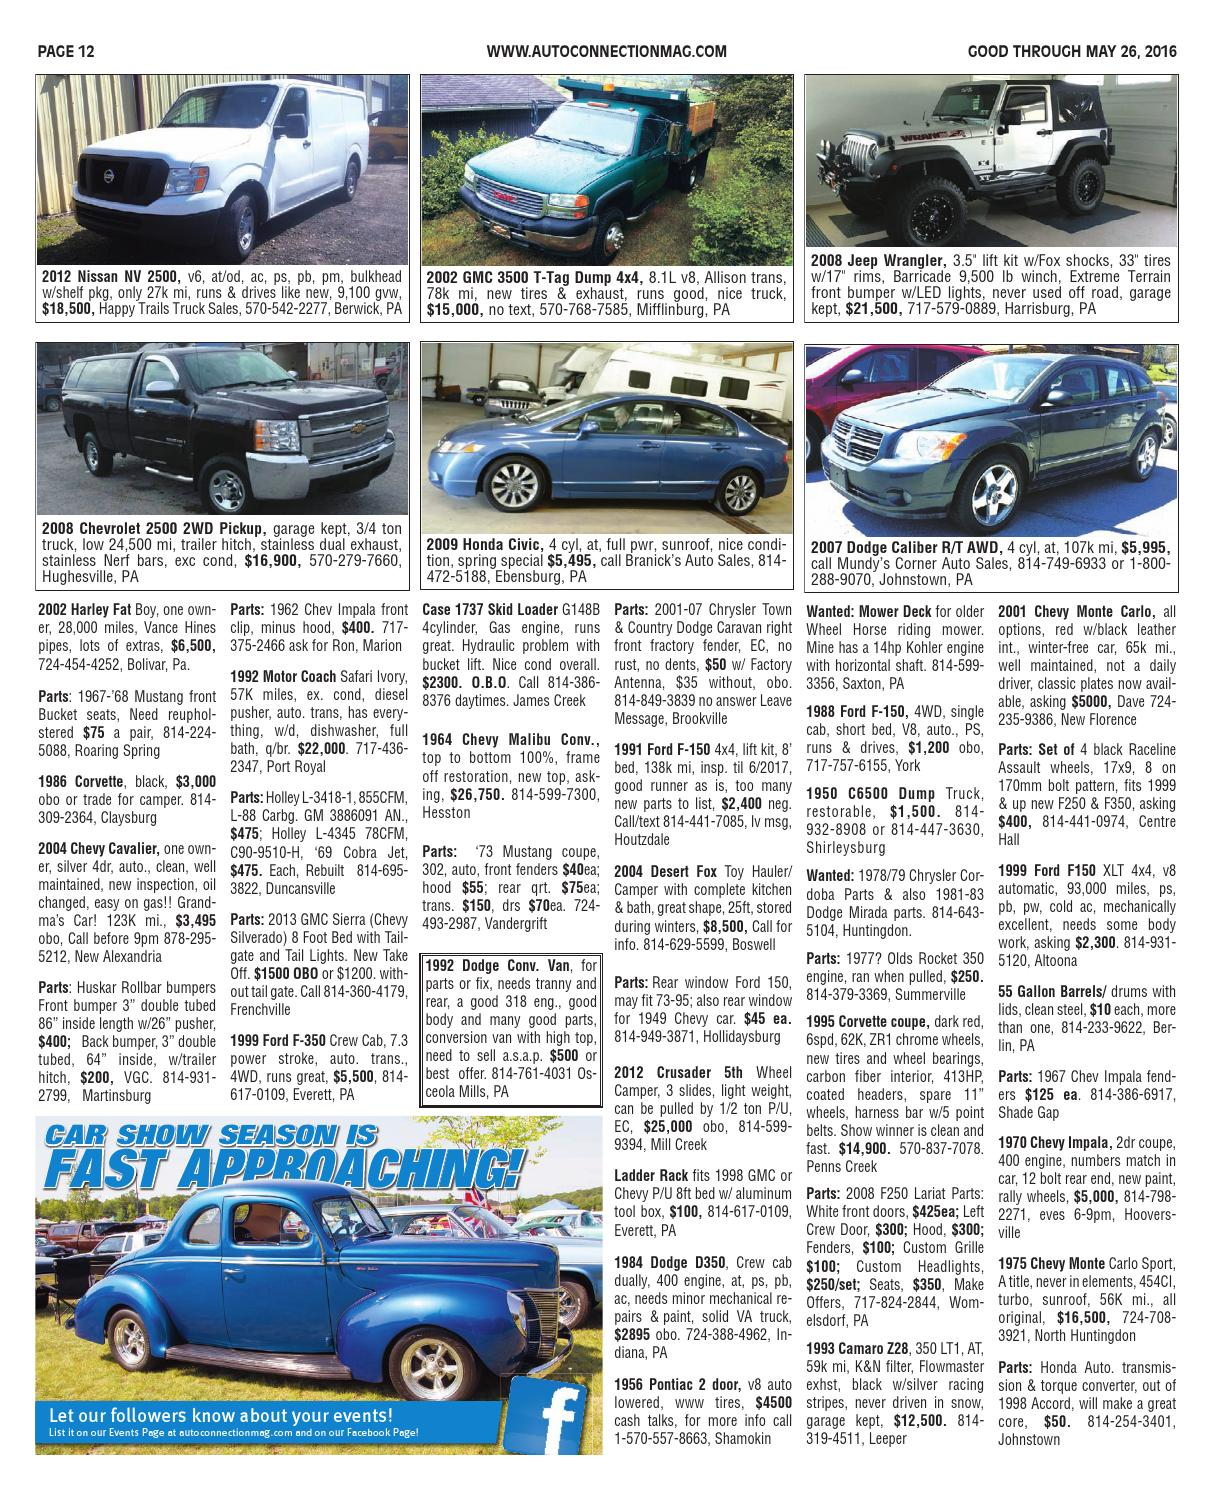 05-26-16 Auto Connection Magazine by Auto Connection Magazine - issuu